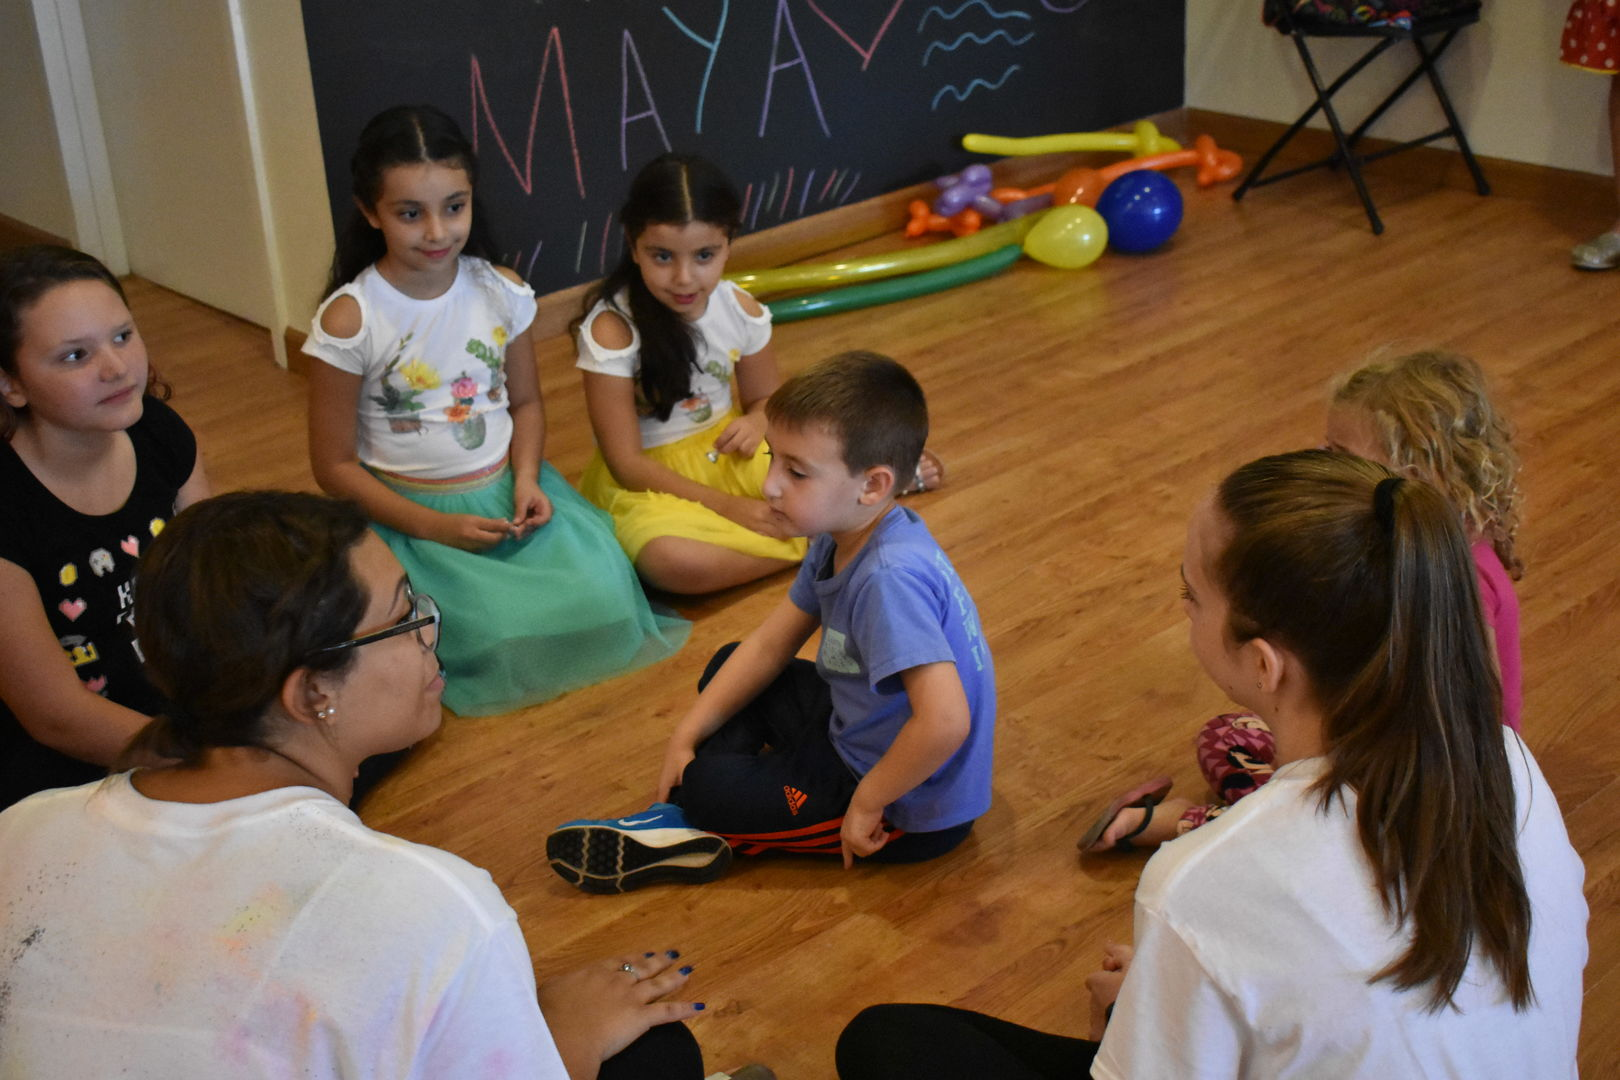 Kids Arts and Crafts Birthday Parties in Plainview NY | Craftastic Party